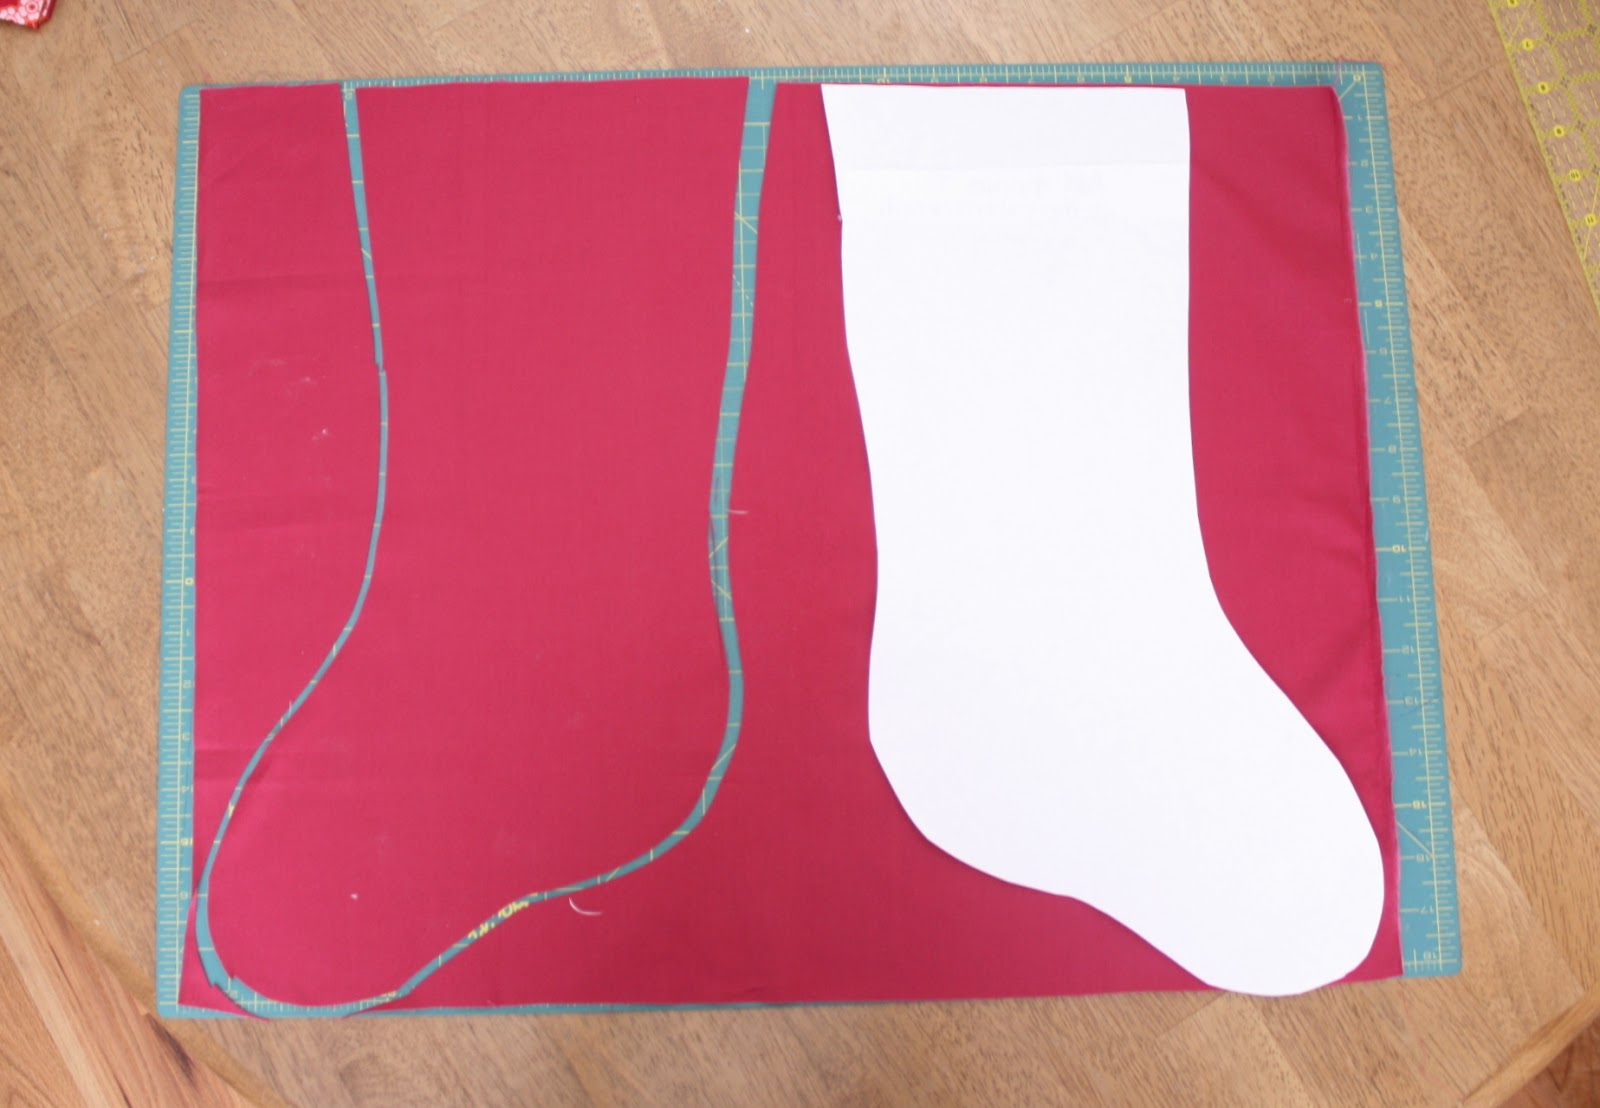 Christmas stocking tutorial diary of a quilter a quilt blog cut out pattern and trace two lining pieces facing opposite directions from one fat quarter jeuxipadfo Gallery